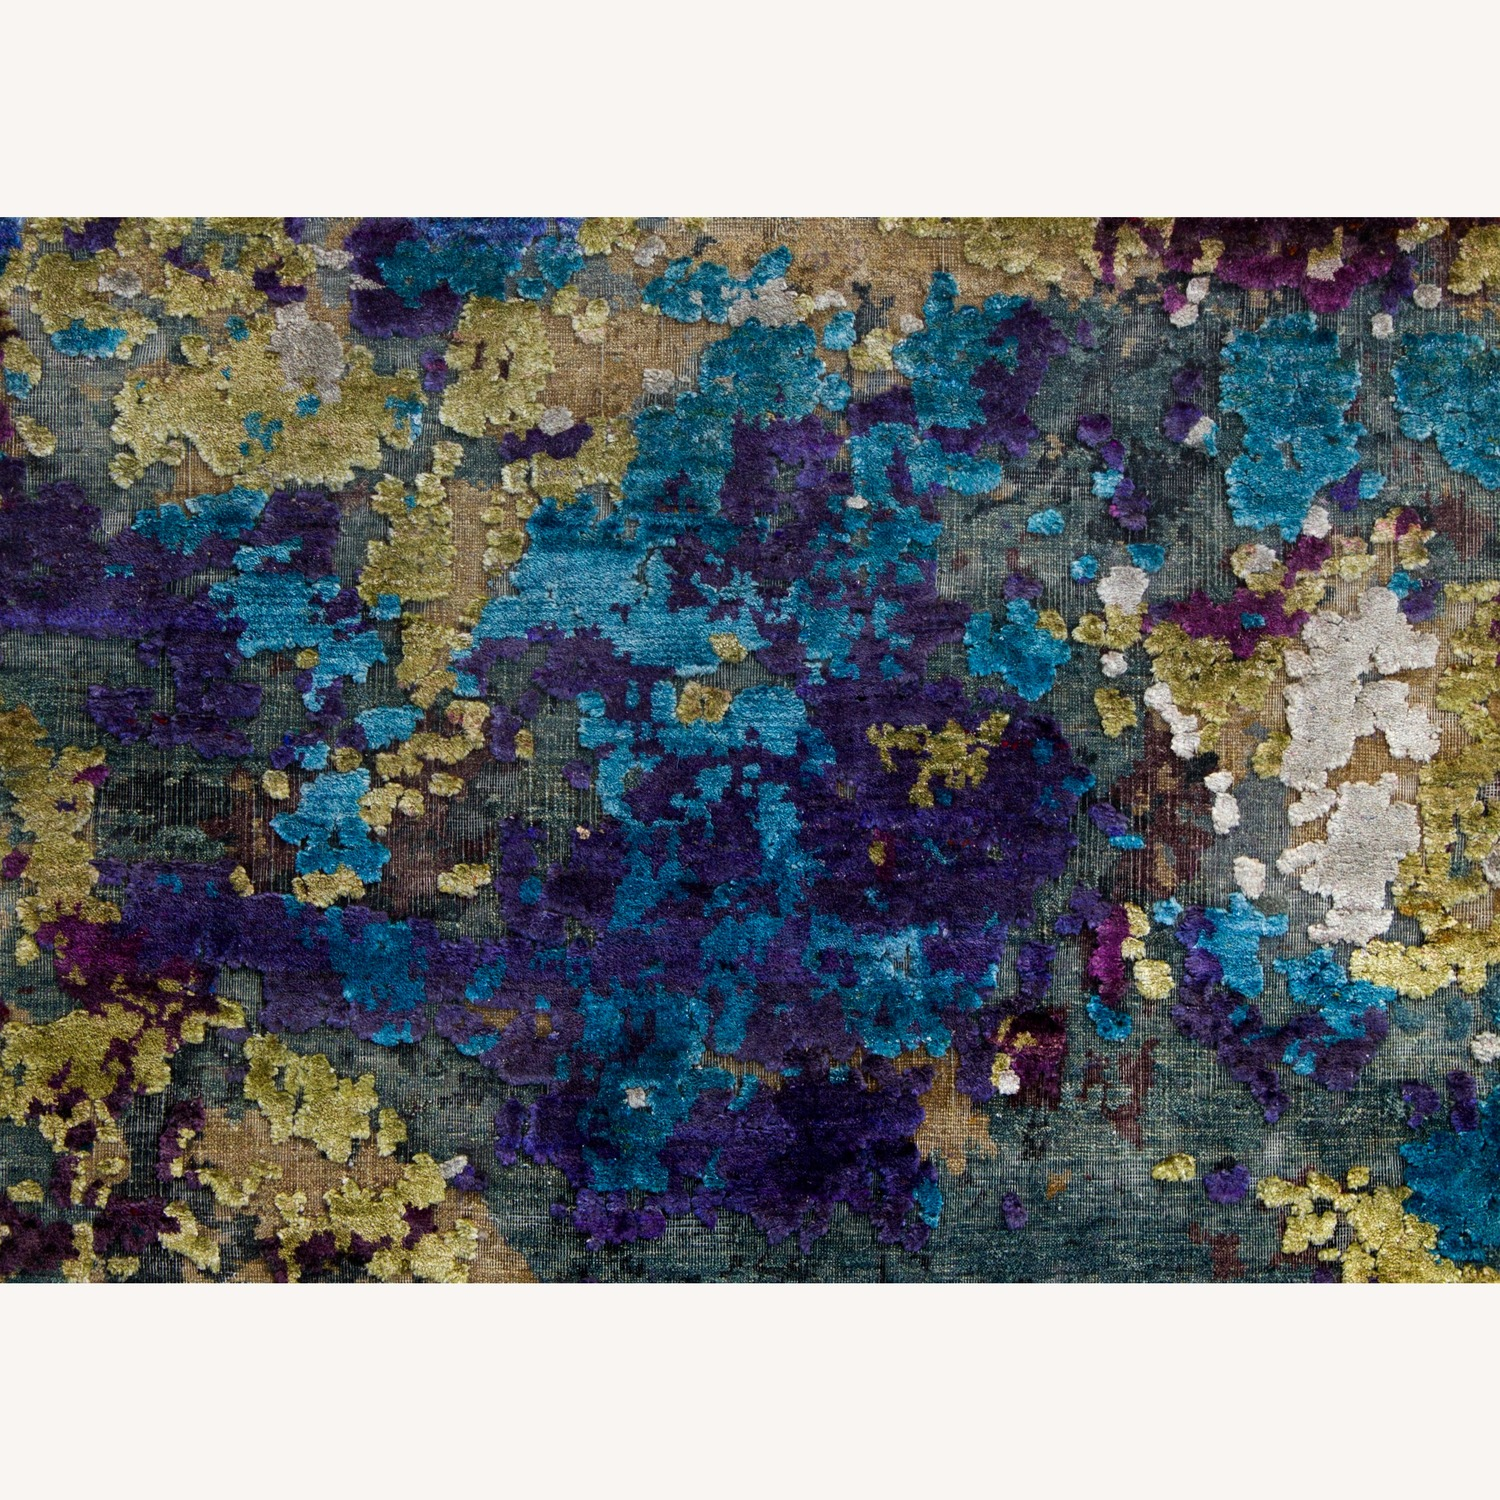 Hand-Knotted Wool & Silk Abstract Organic Woven Rug - image-6